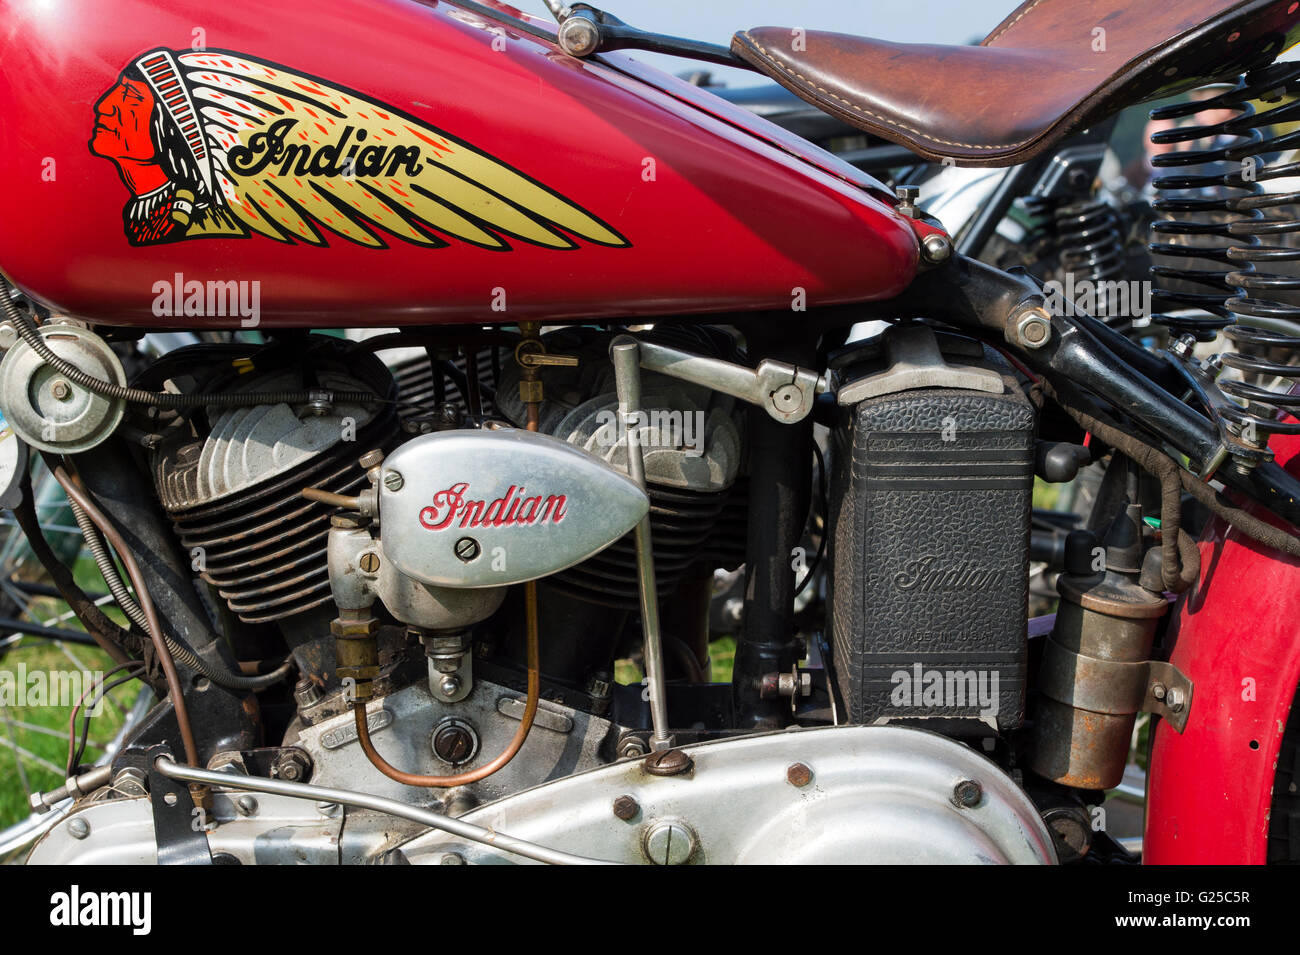 Indian 741b Scout motorcycle. Classic American motorcycle - Stock Image